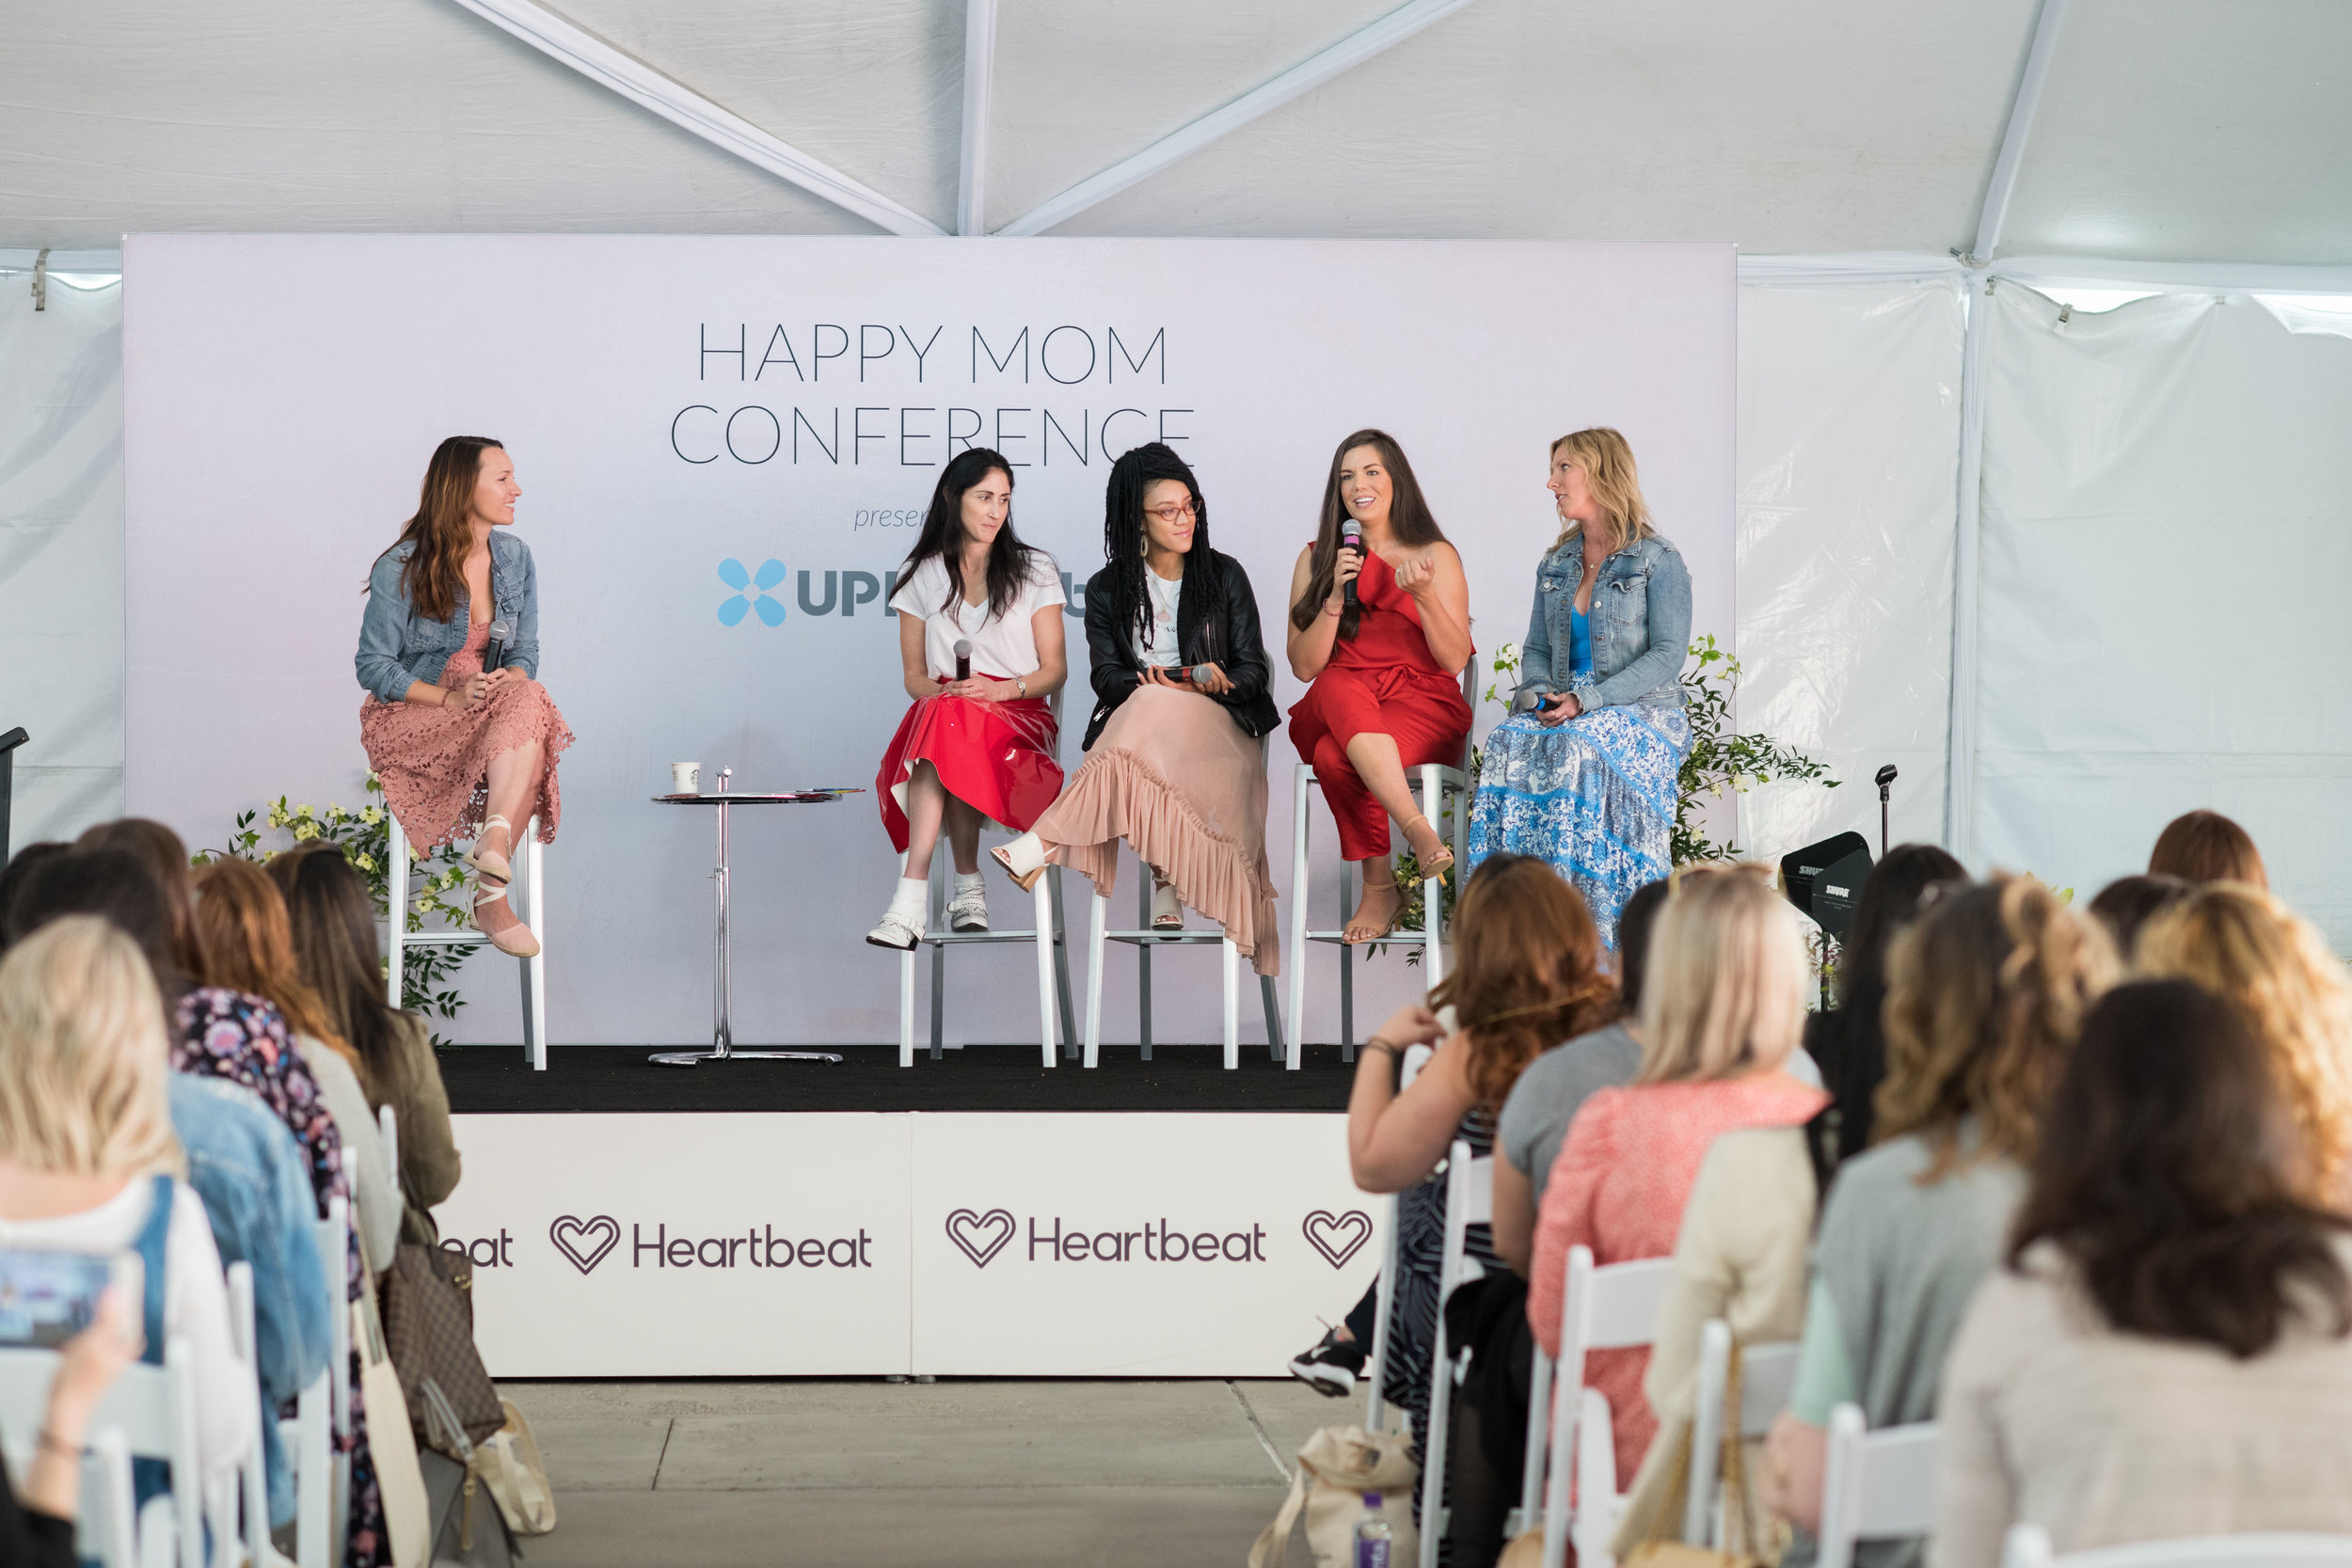 EL1_4972-Elaine-Lee-Photography-Happy-Mom-Conference-2019.jpg